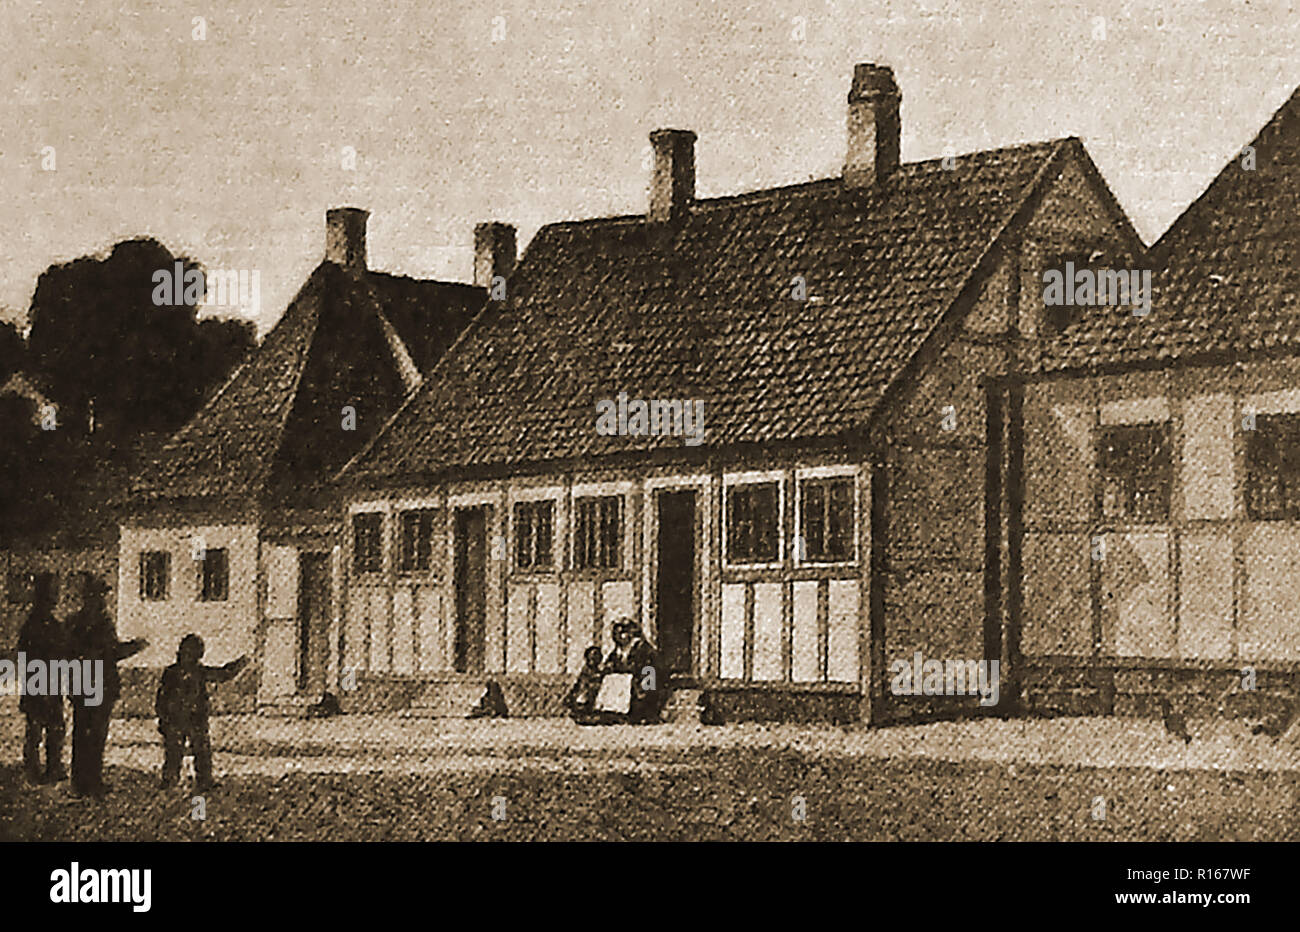 An old illustration showing the birthplace of Hans Christian Andersen (1805-1875) in Odense, Denmark - Stock Image